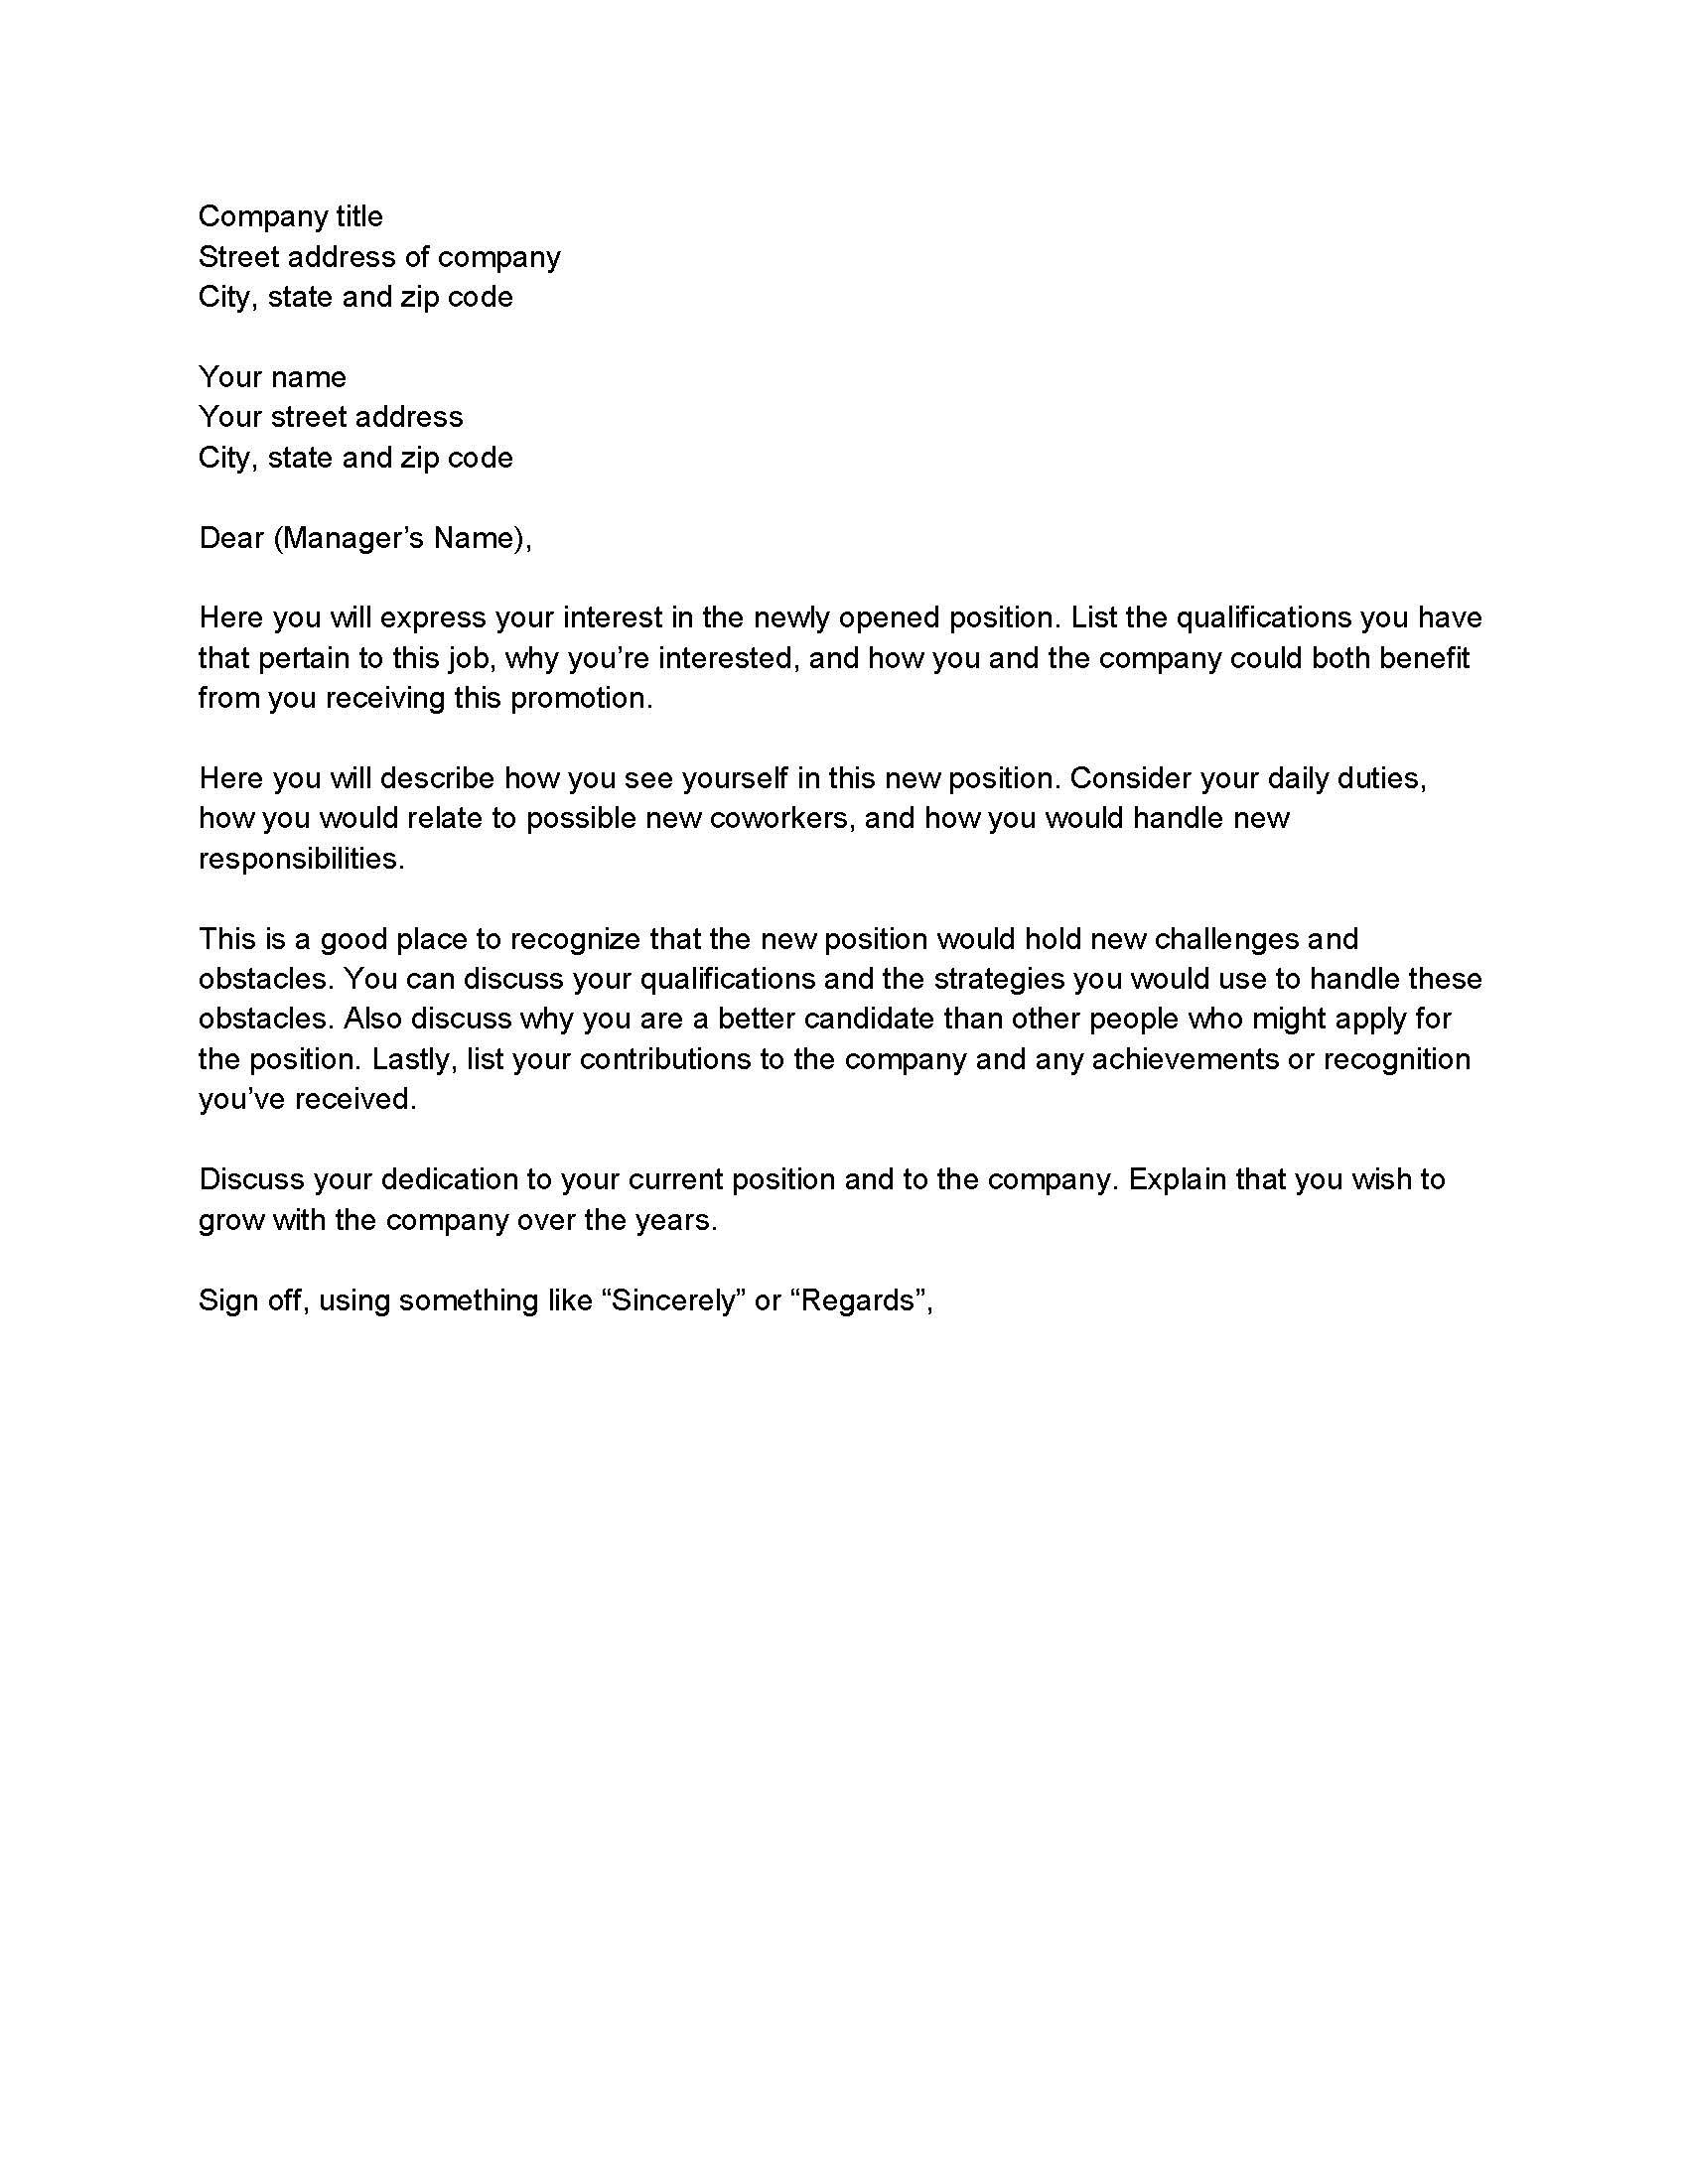 Letter Of Interest for Employment Template - Letter Interest Template